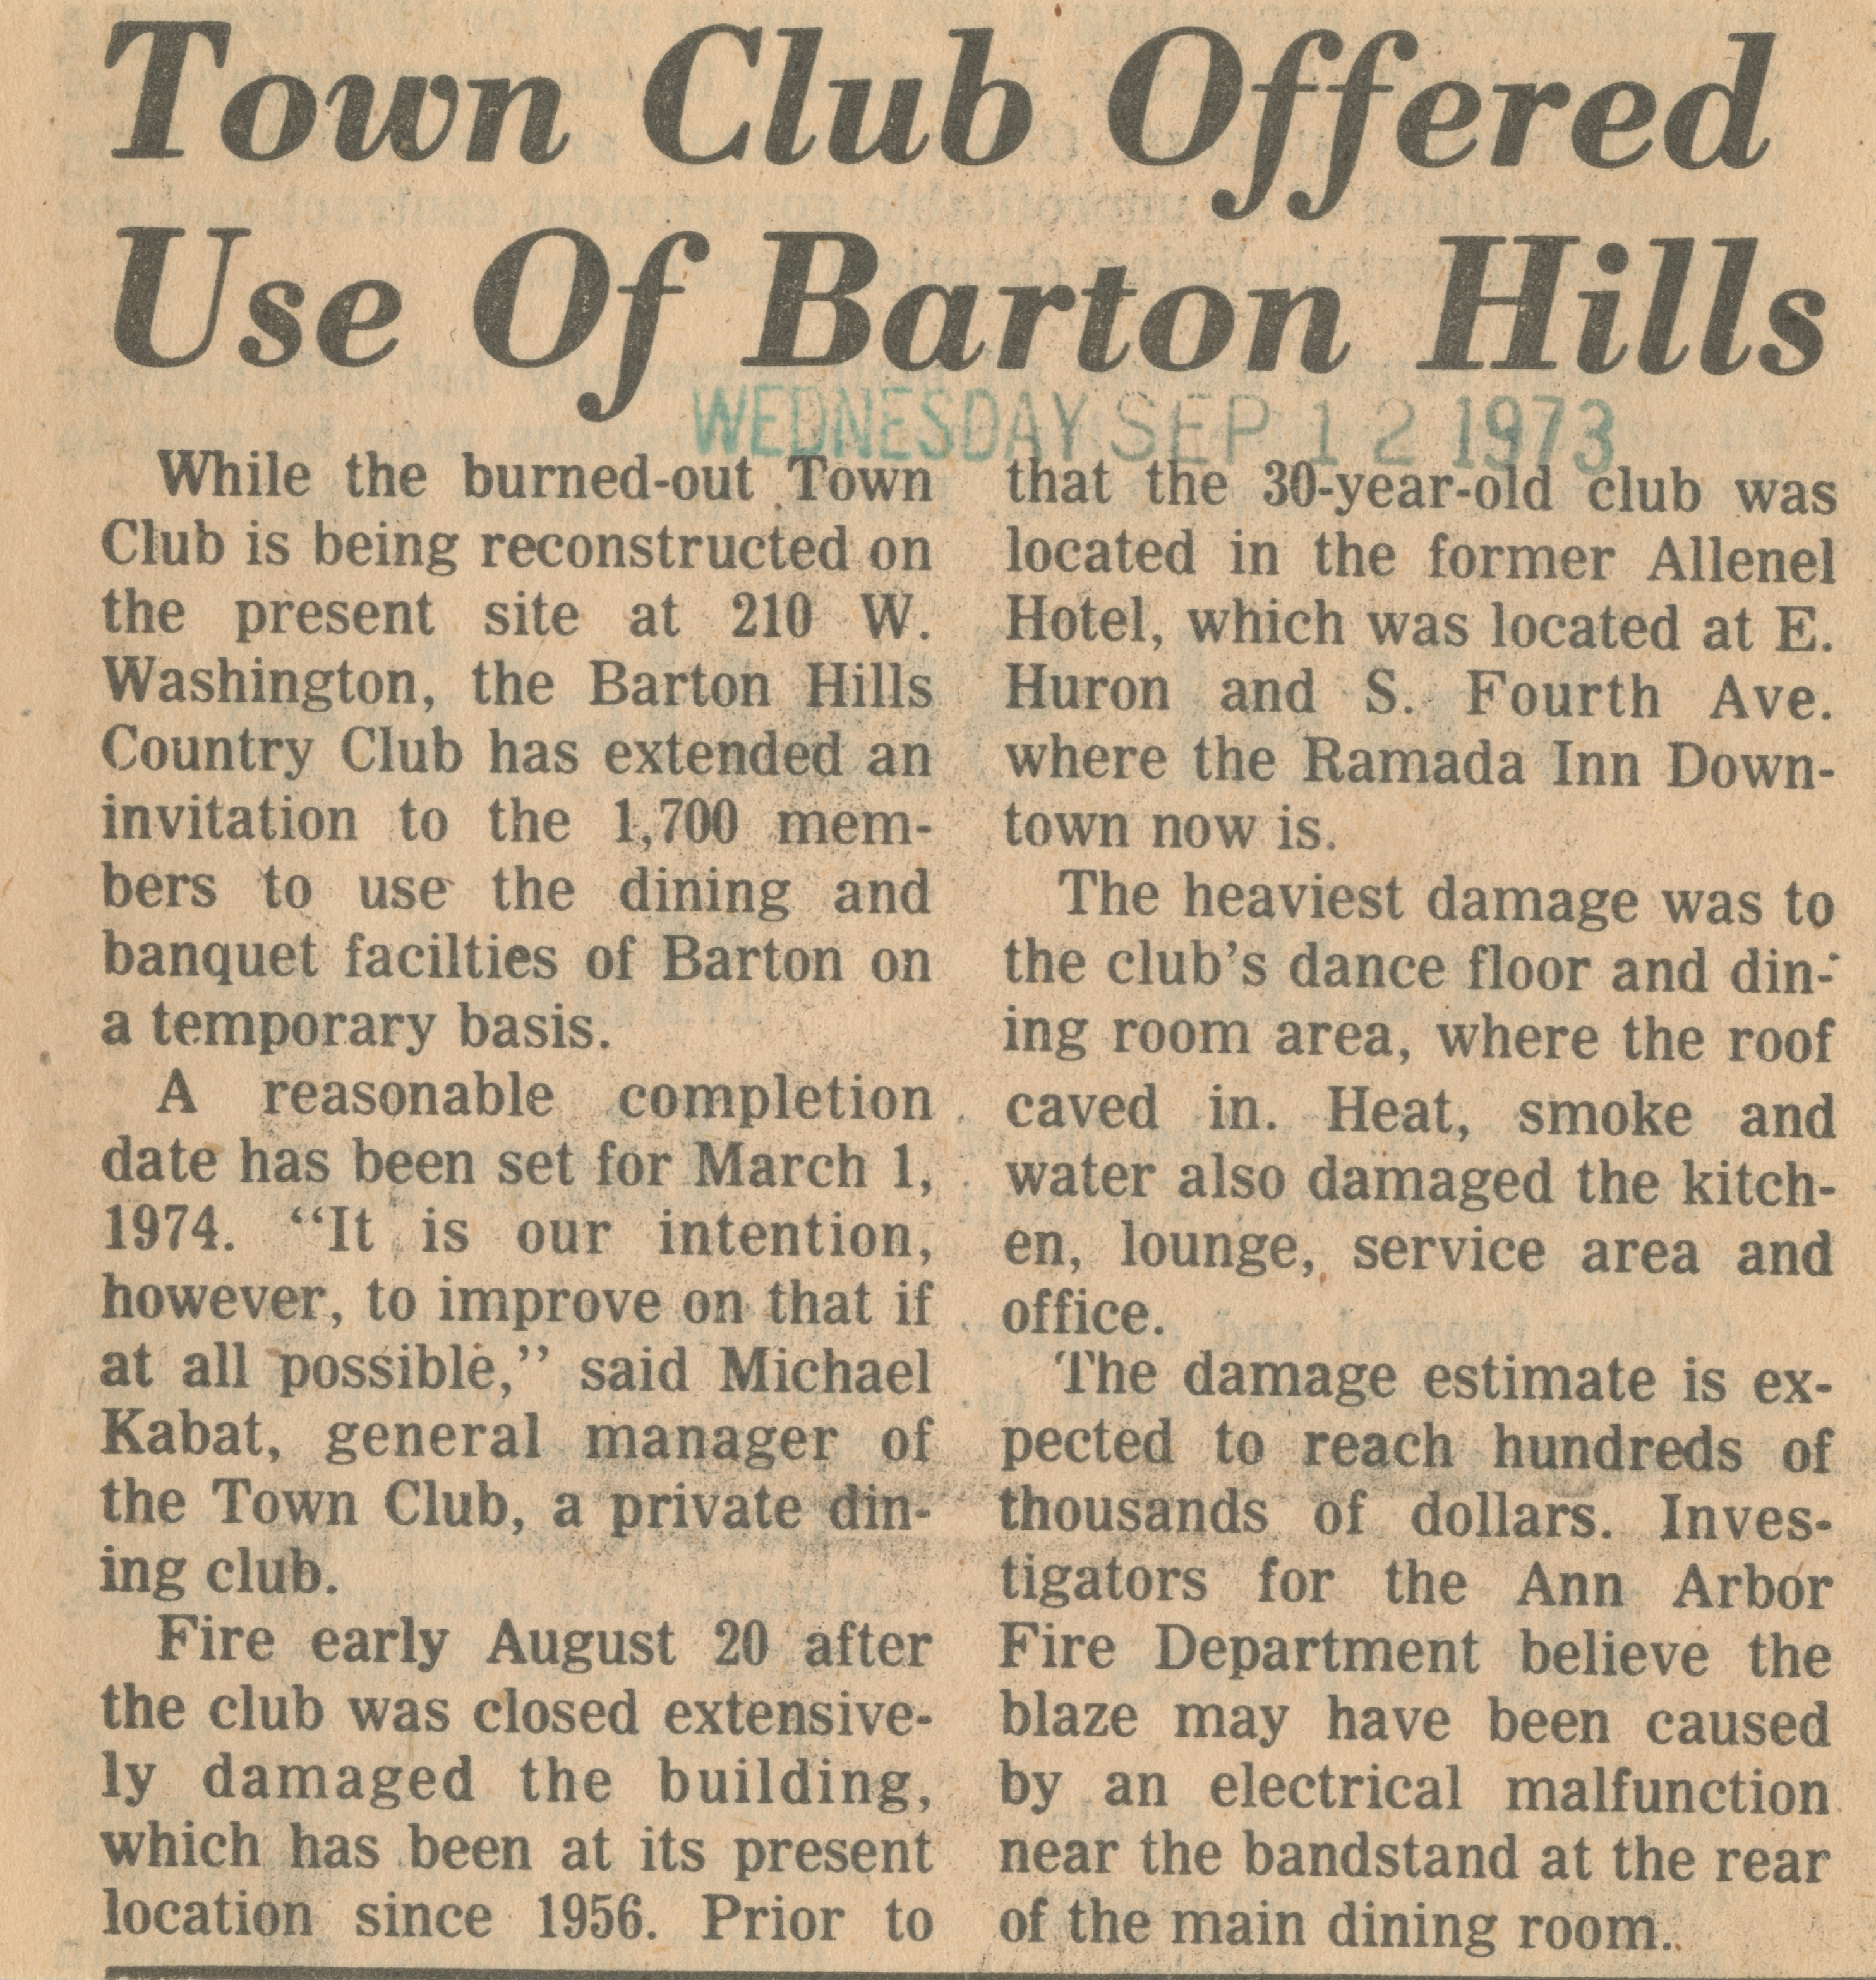 Town Club Offered Use Of Barton Hills image